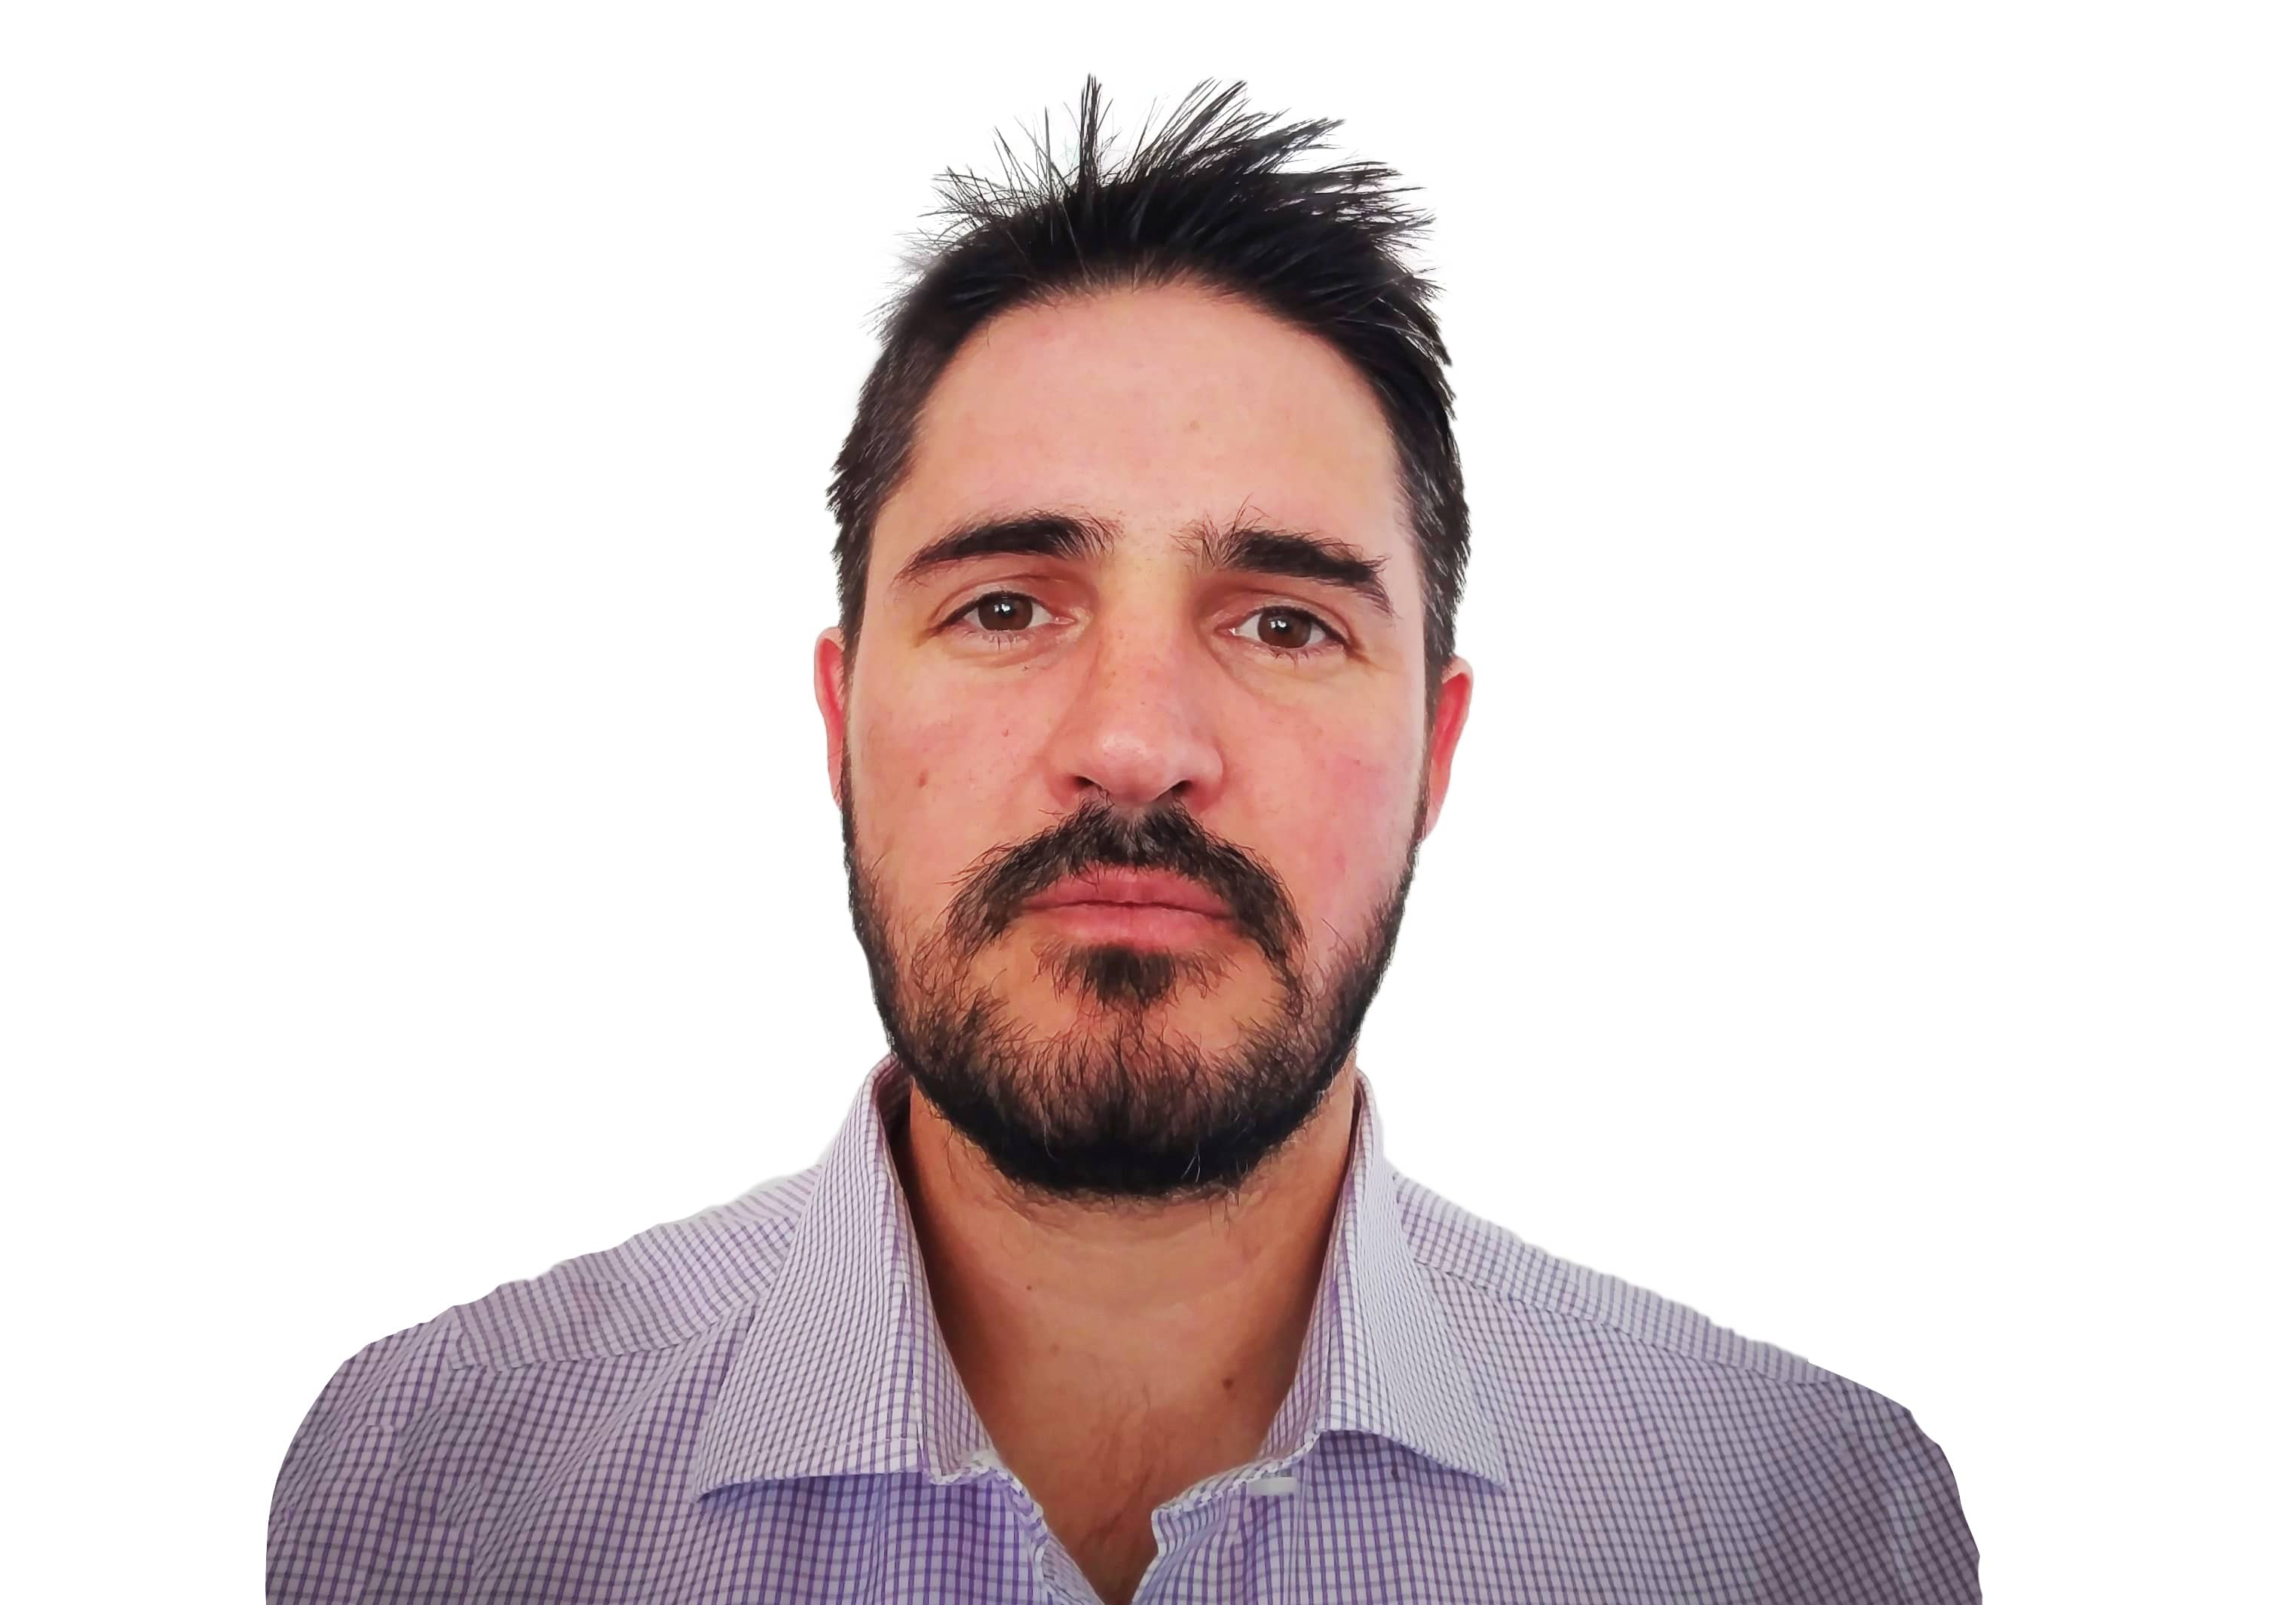 MetrixLab expands its global footprint into Argentina, appointing Diego del Pozo Mitschele as Managing Director